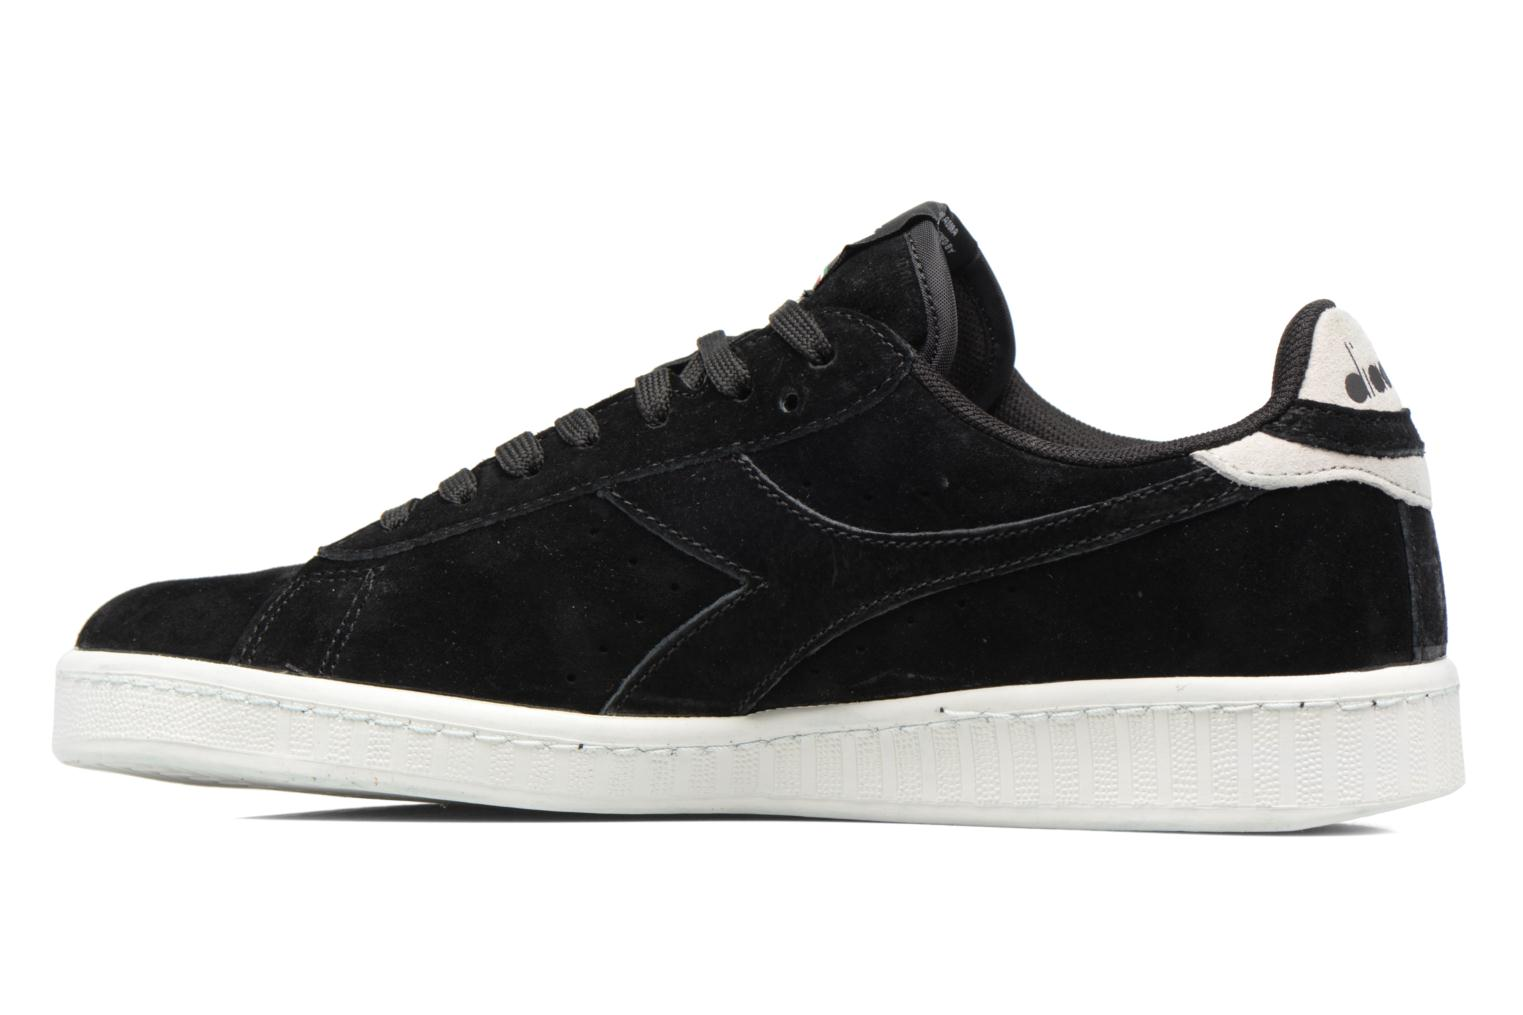 Game Low S Diadora Black Diadora Game qzMVSLUpG